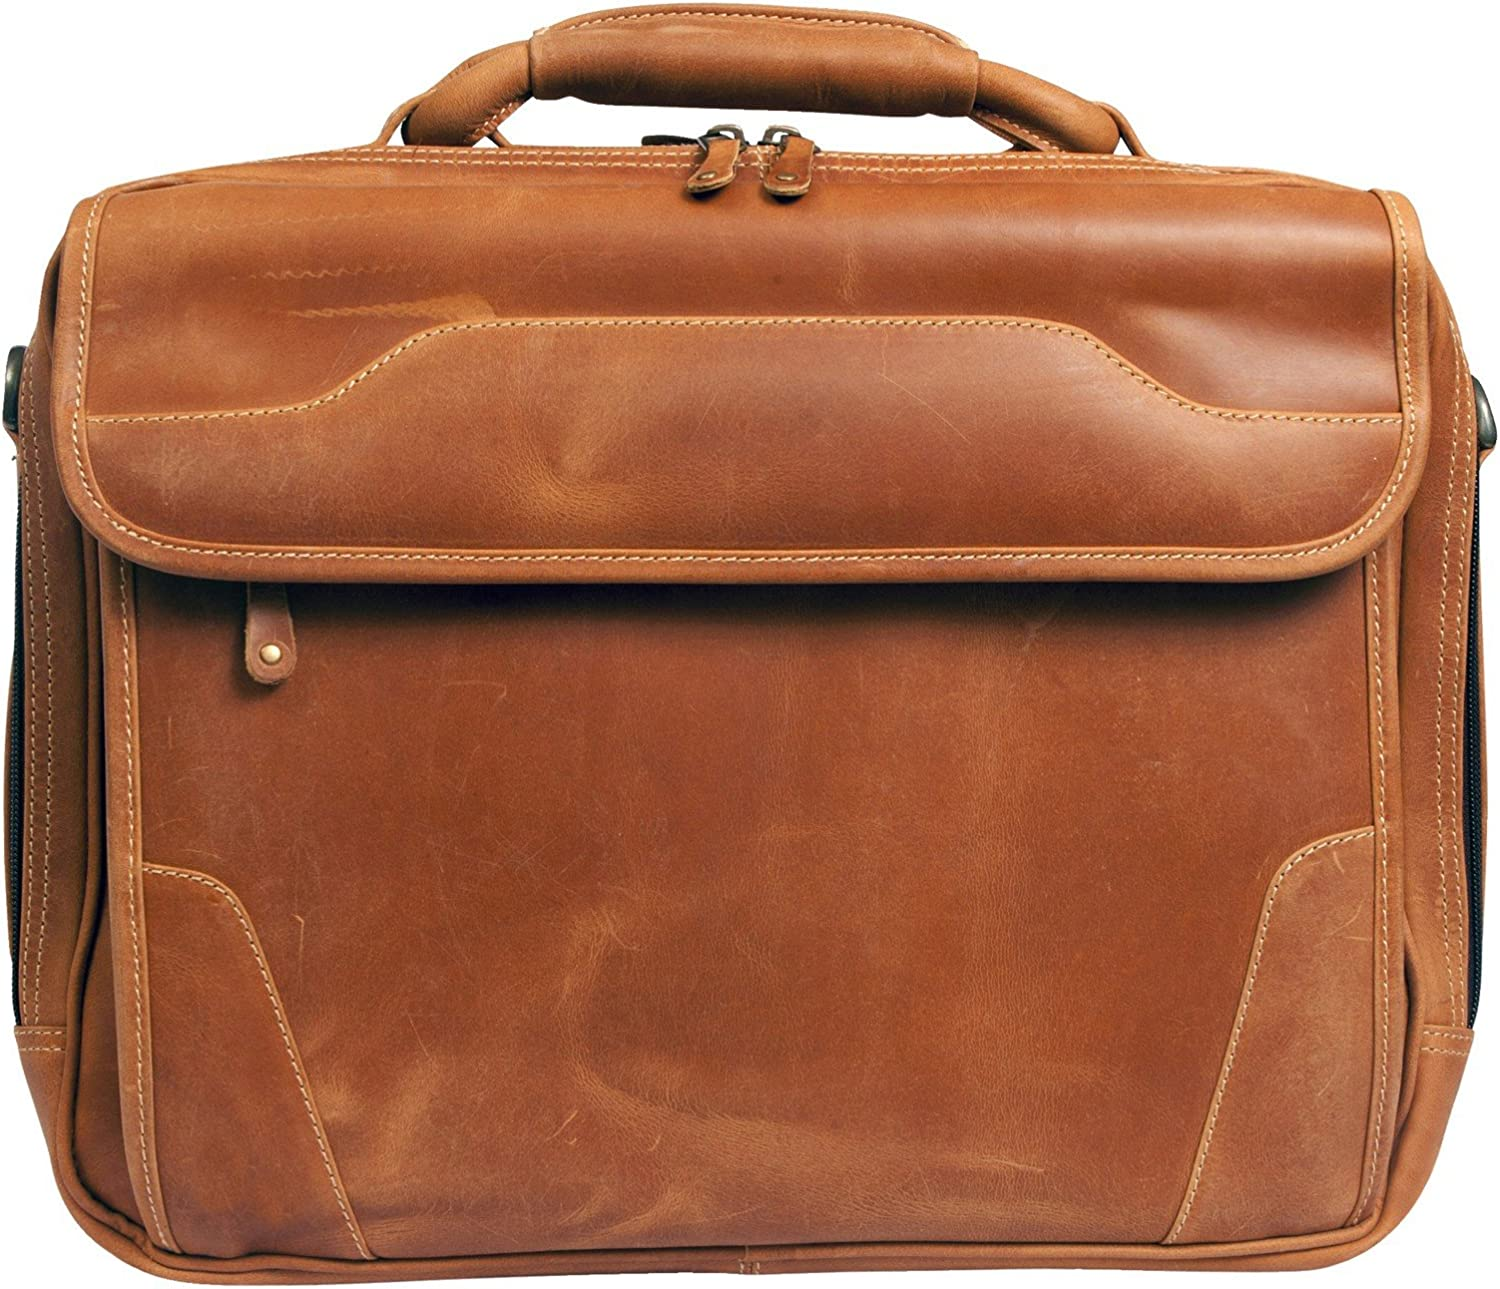 Canyon Outback Dakota Pines 14 Leather Computer Briefcase, Distressed Tan